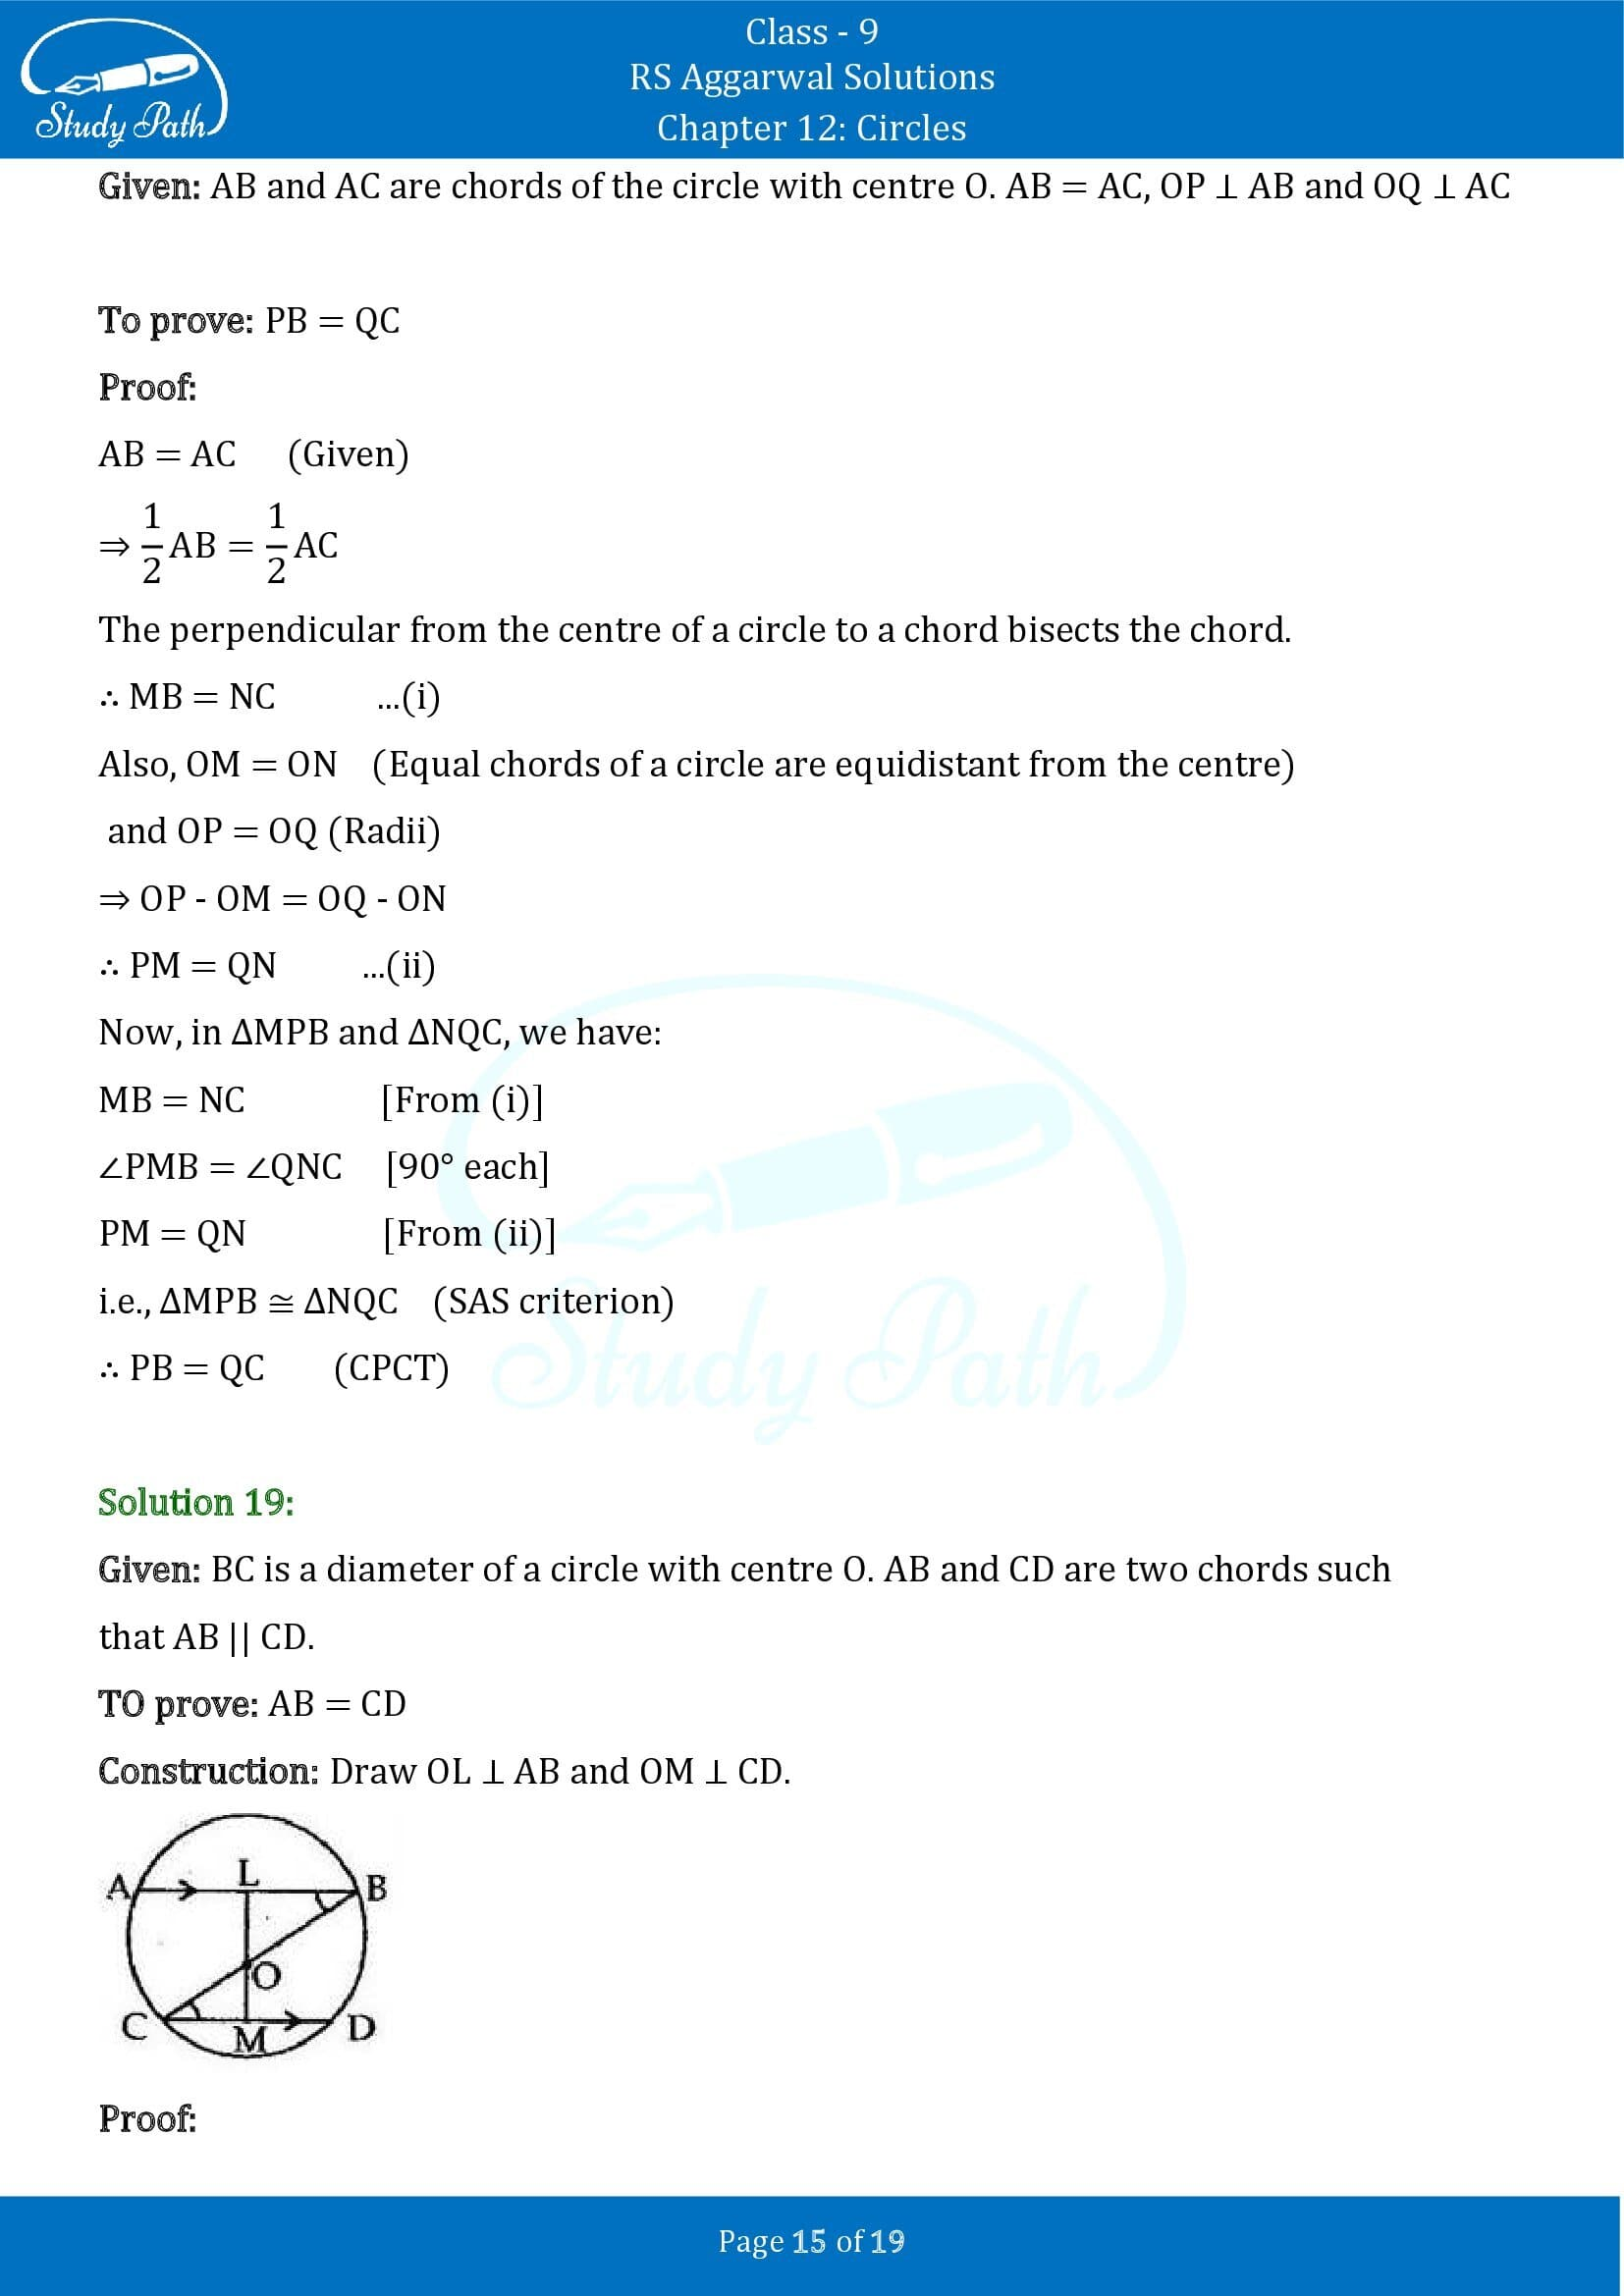 RS Aggarwal Solutions Class 9 Chapter 12 Circles Exercise 12A 00015